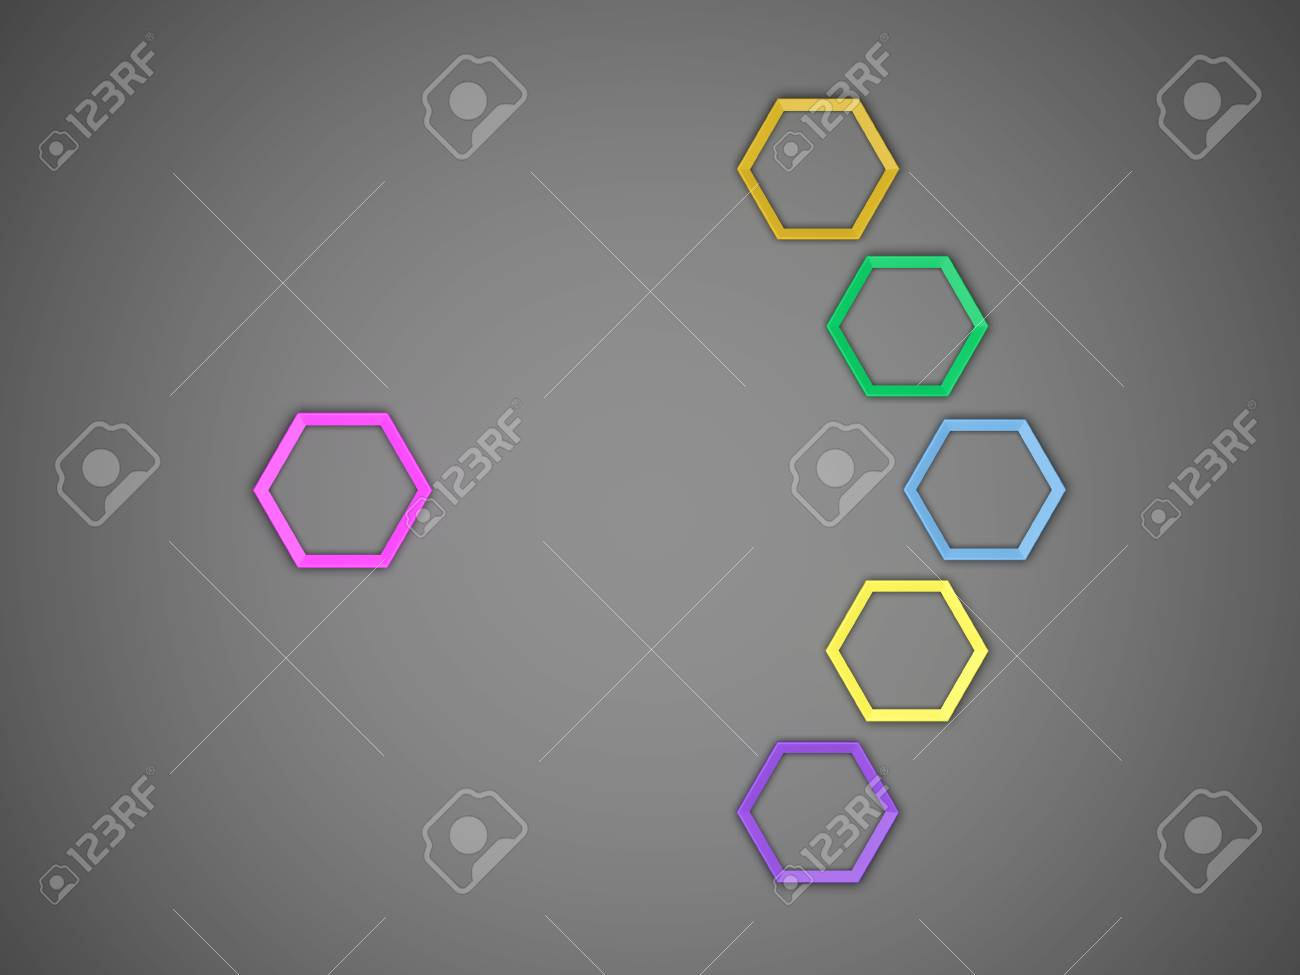 3d octagon template layout for business stock photo picture and